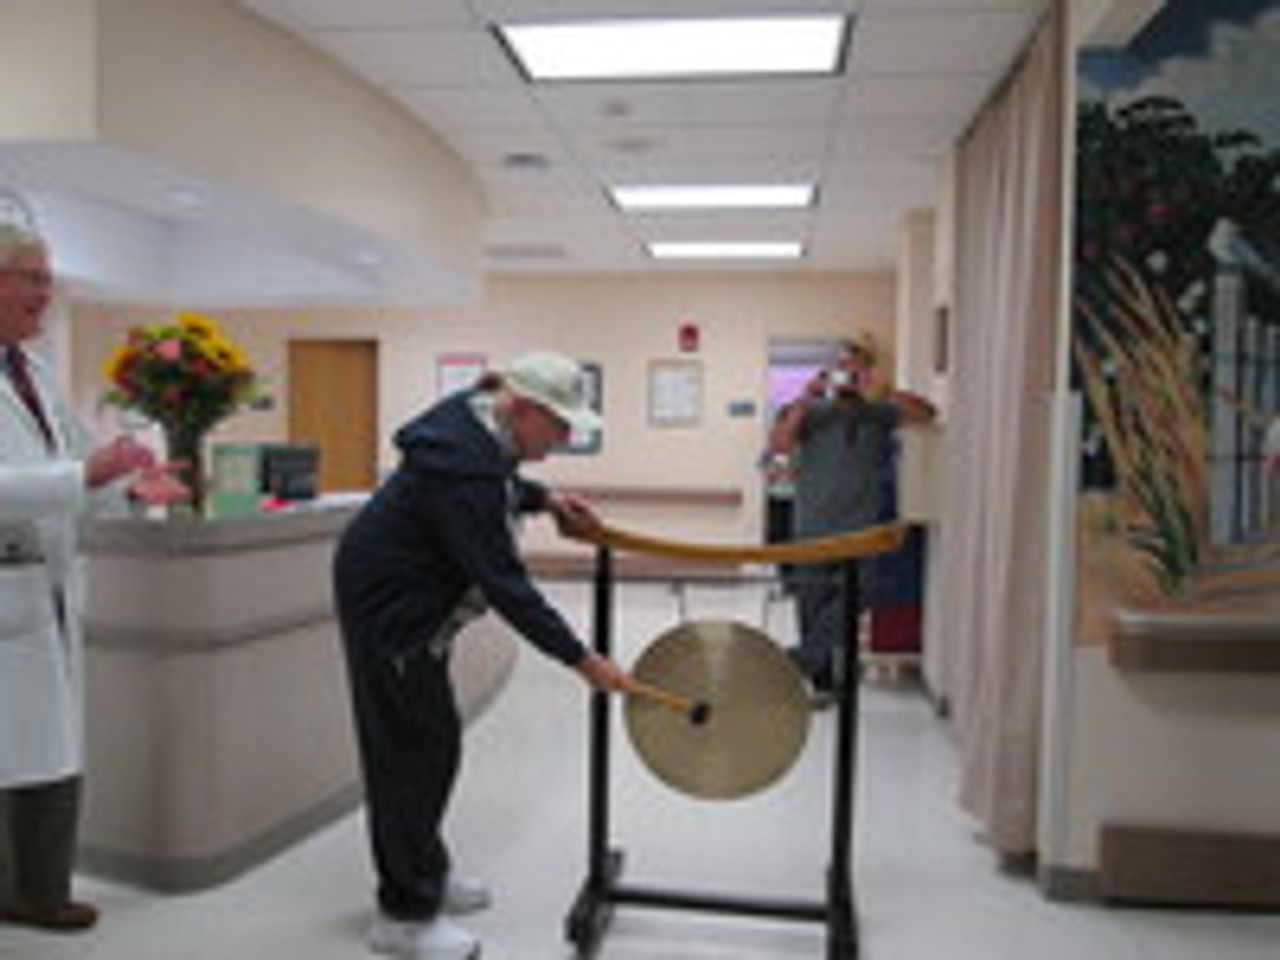 Rich Bangs a Gong at Completion of Radiation Therapy - Long Island Jewish Hospital New York